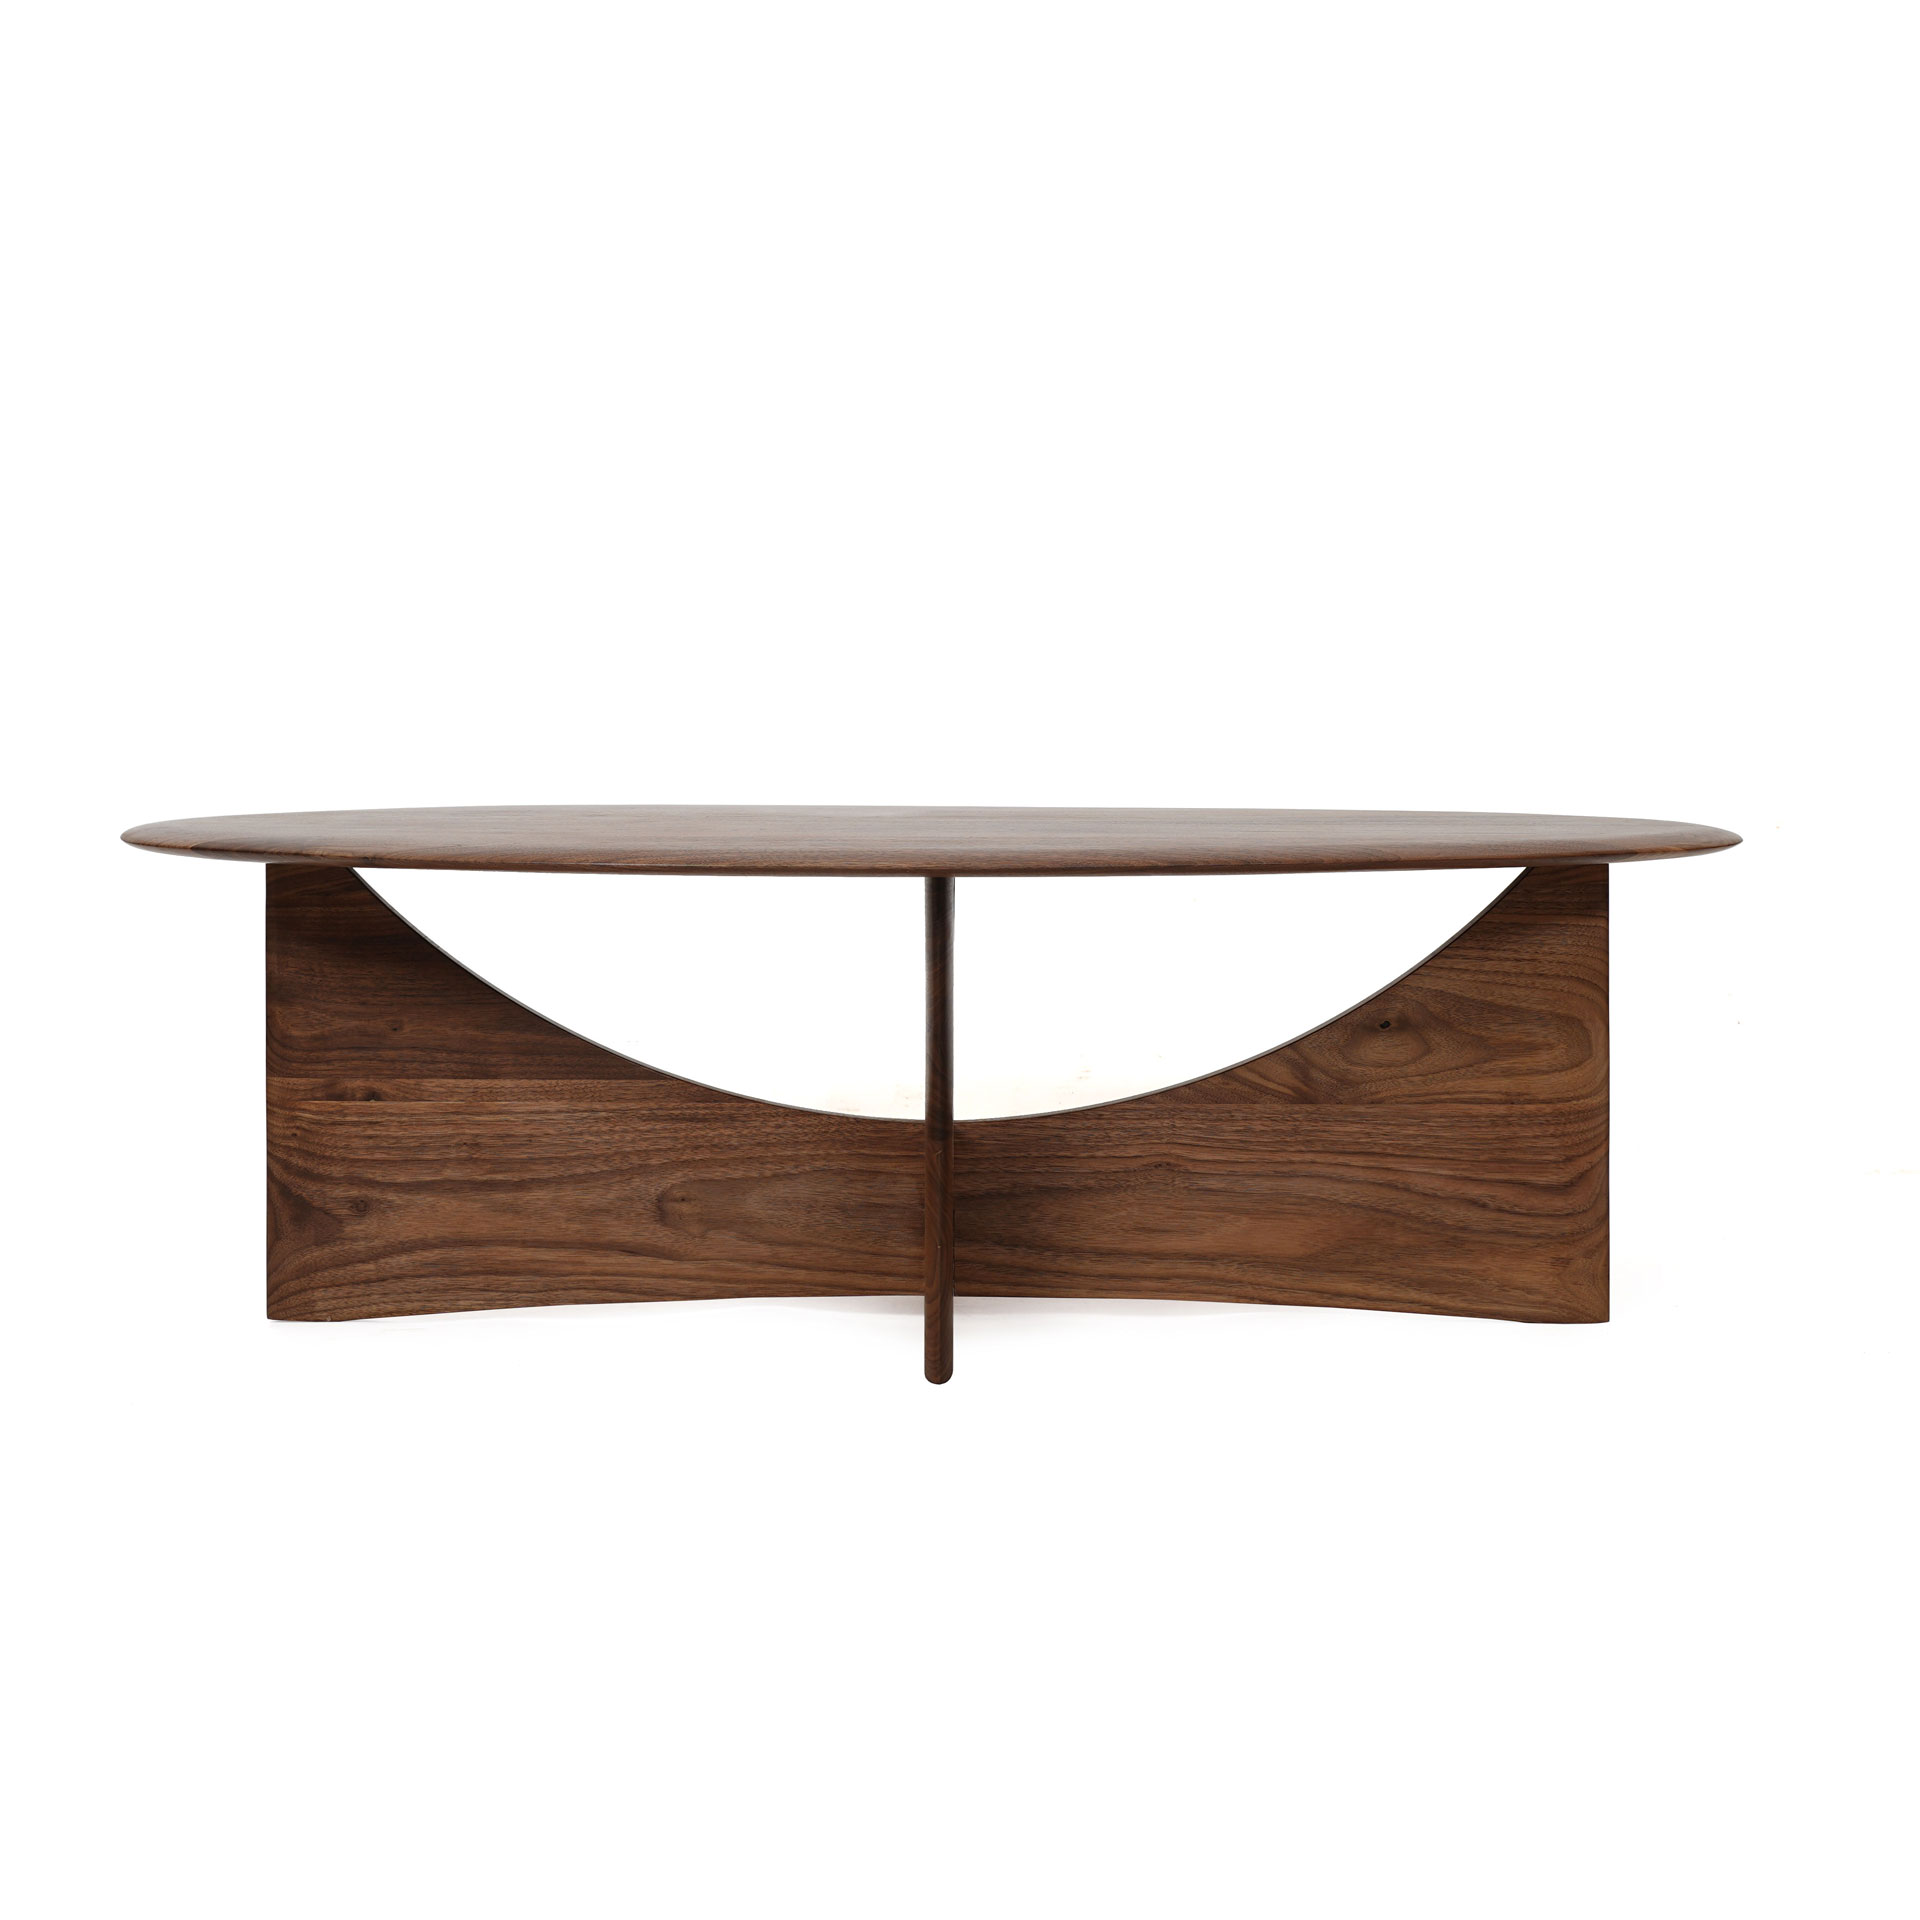 10th Coffee table